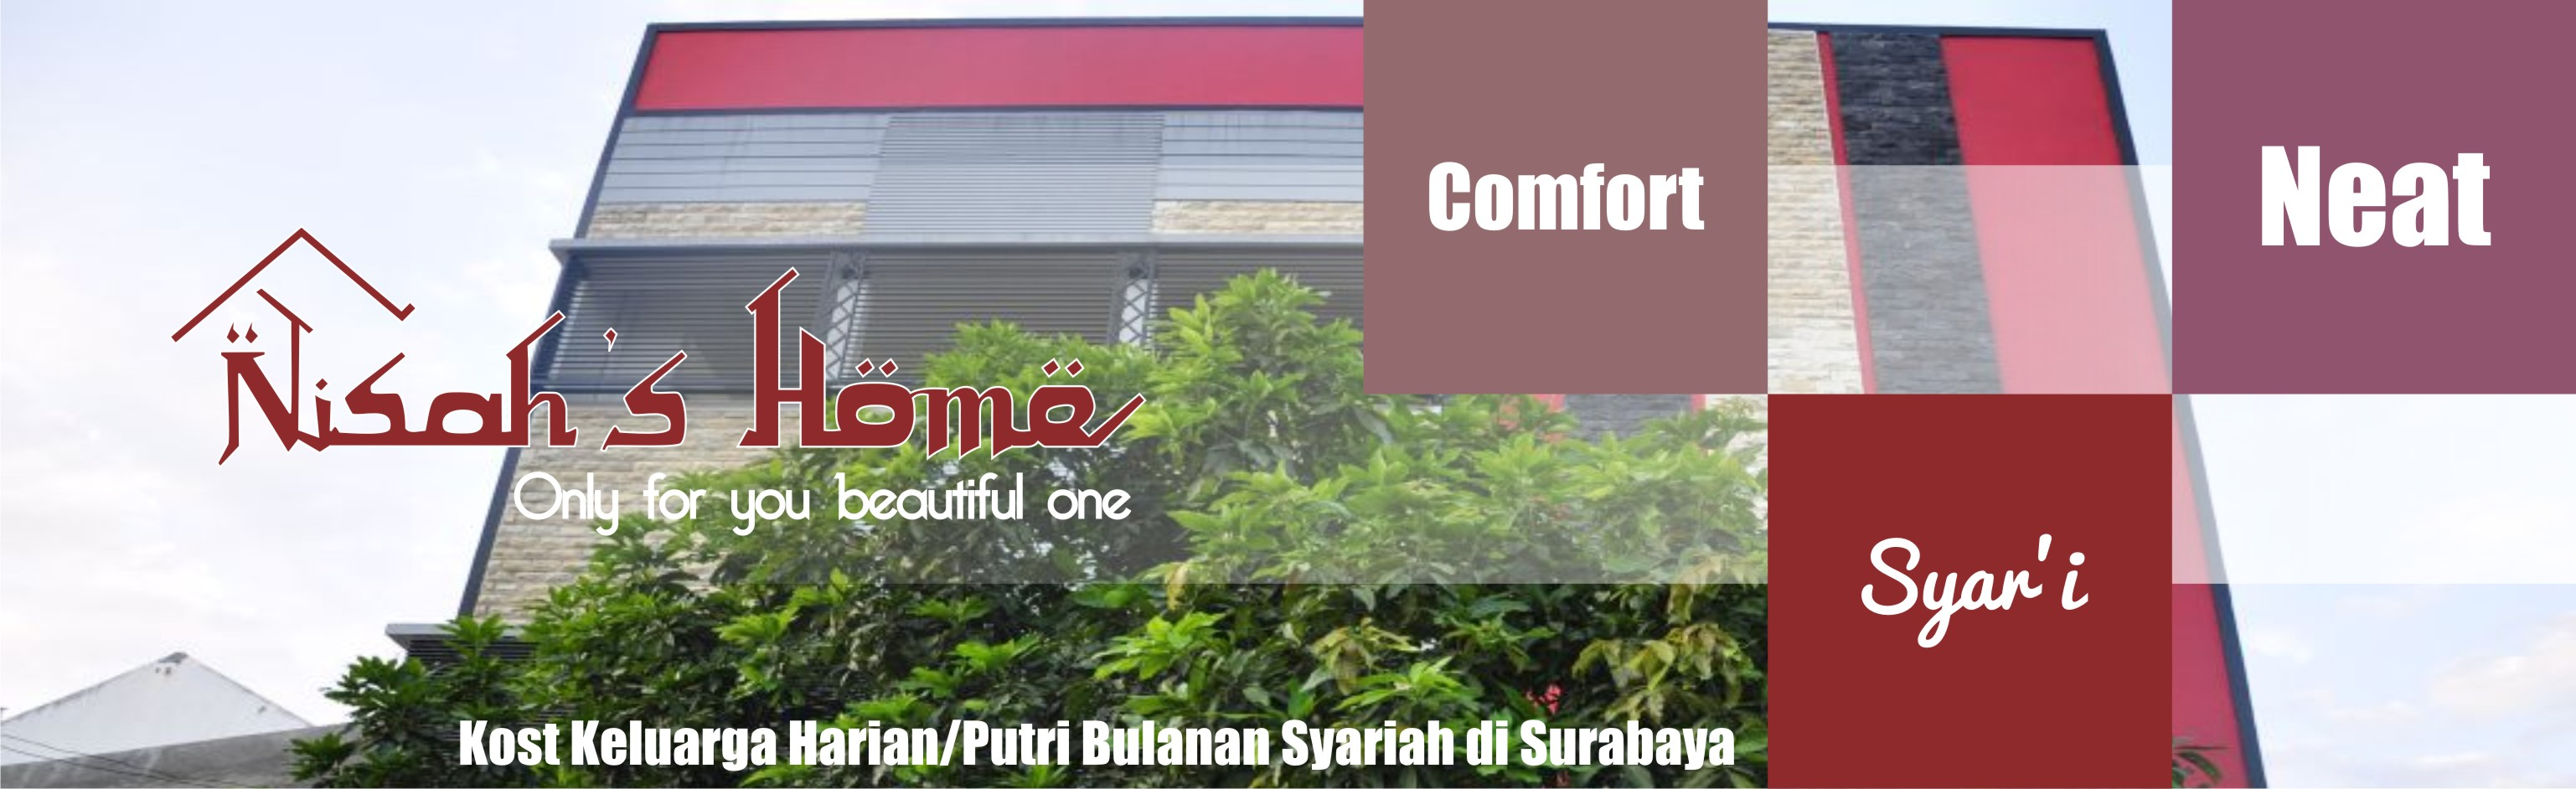 Header nisahome website 1